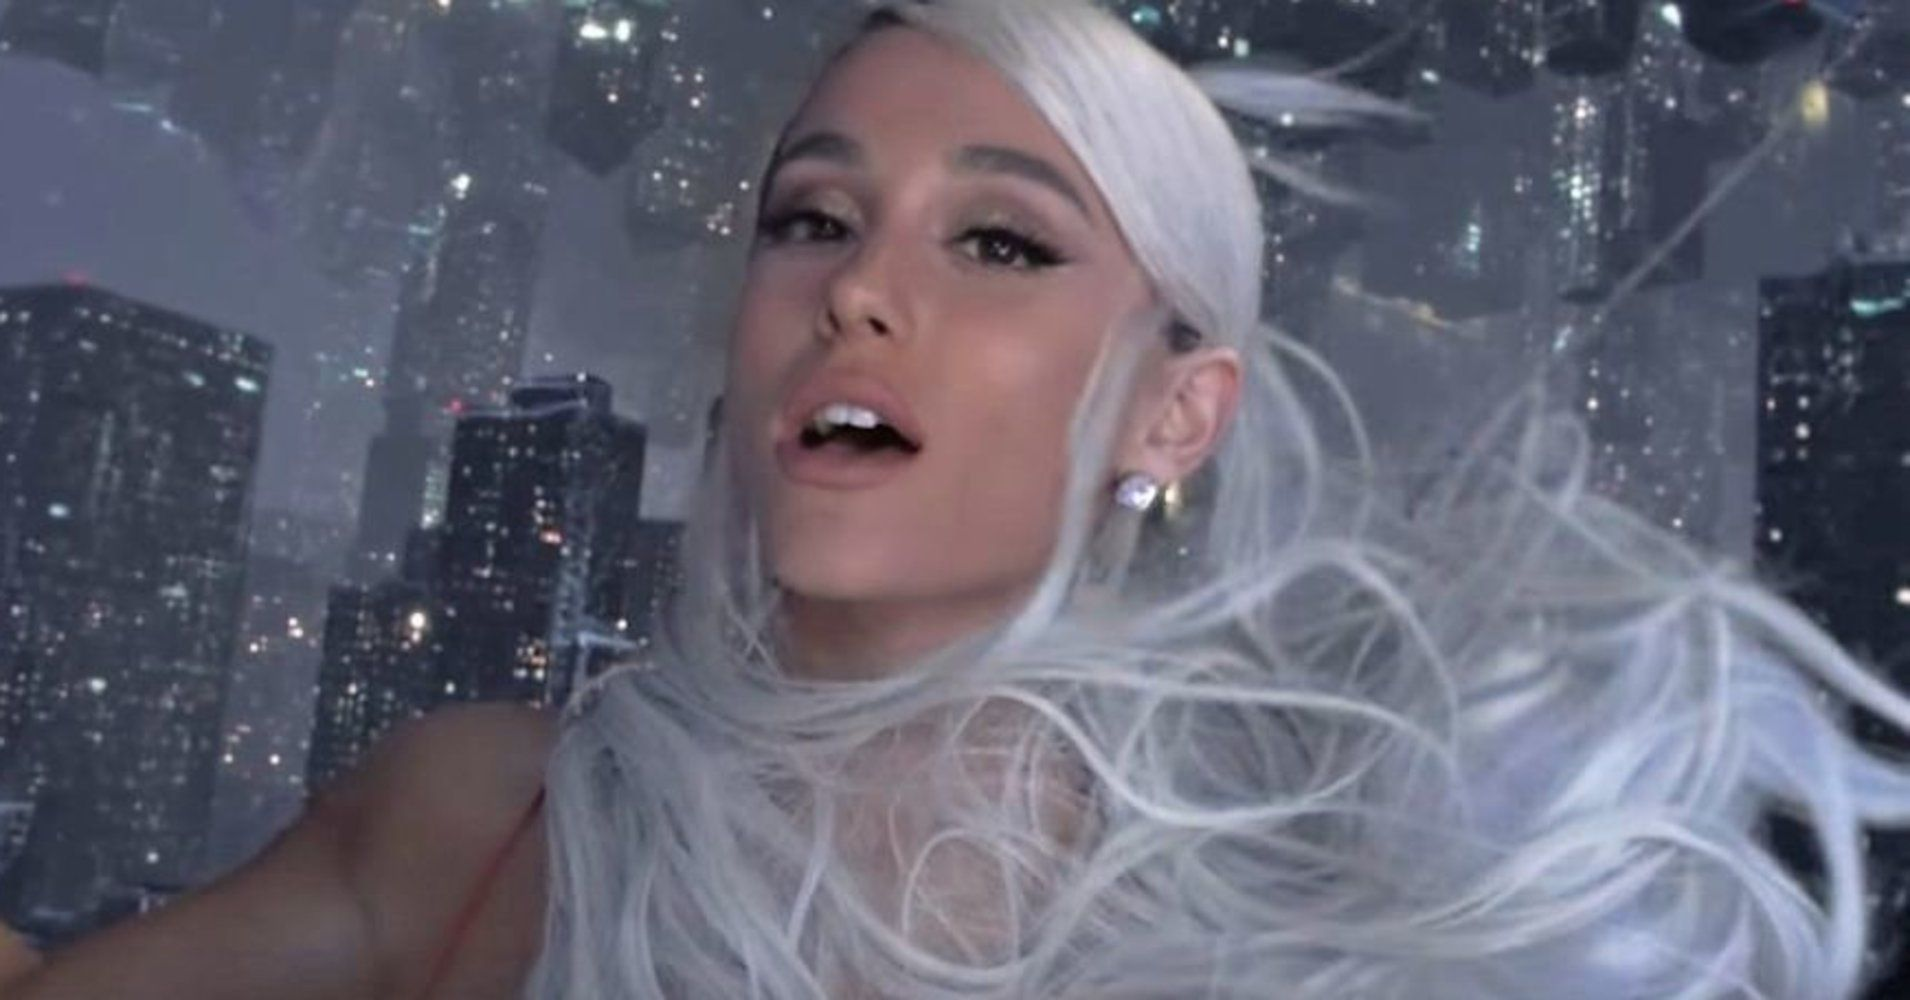 Ariana Grande Drops First Single No Tears Left To Cry Since